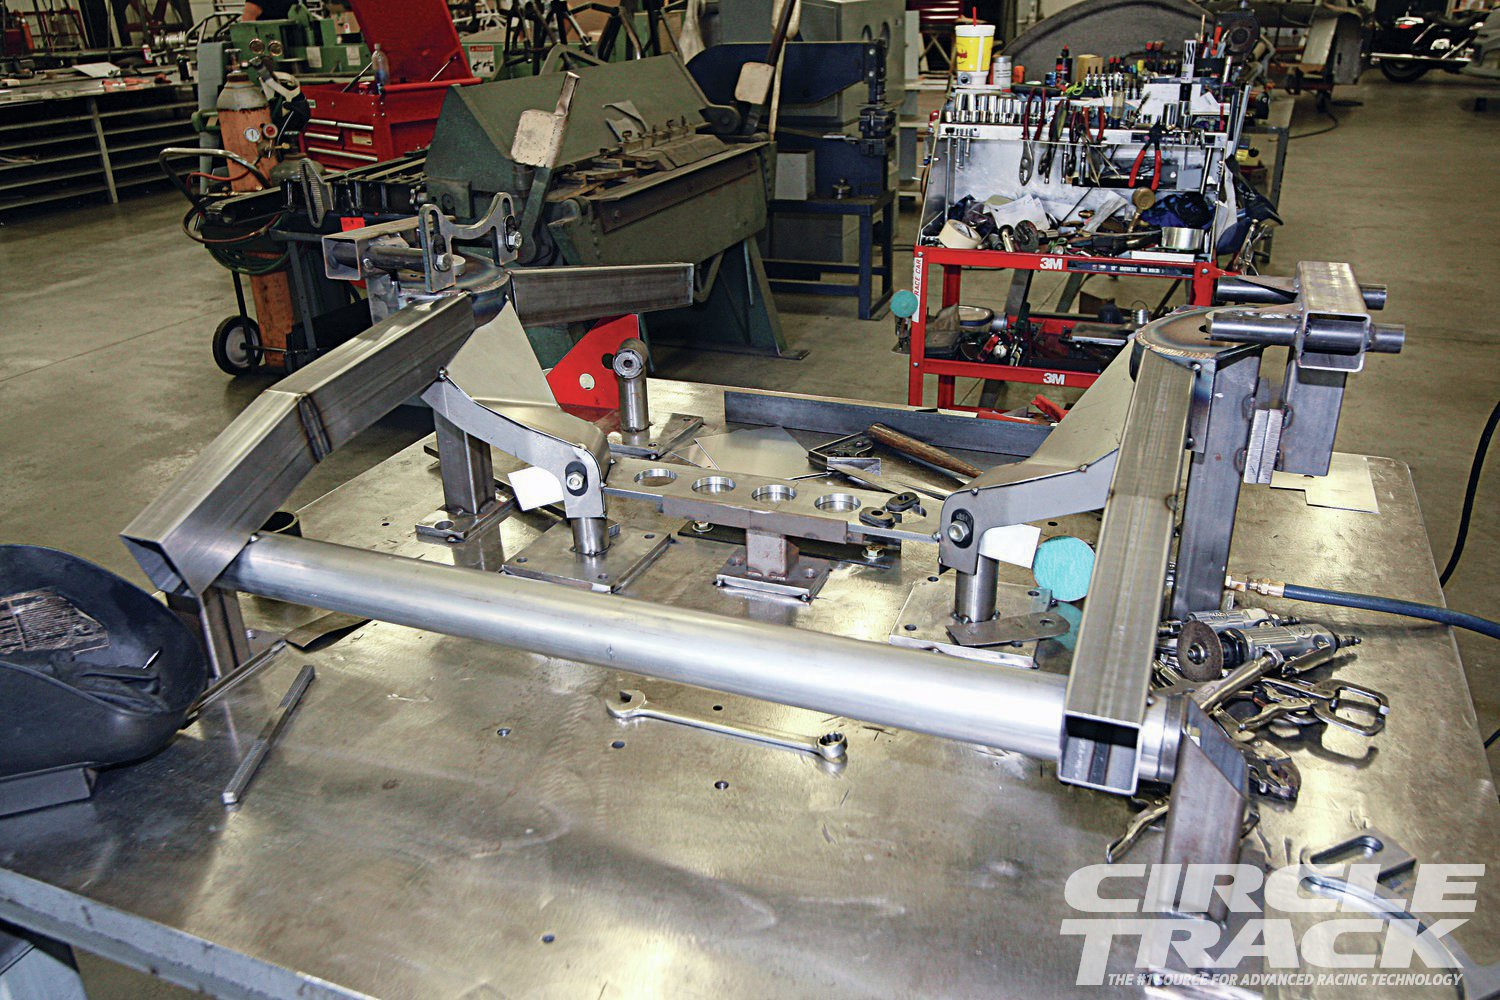 10. Here's a closer look at the nearly complete front clip.